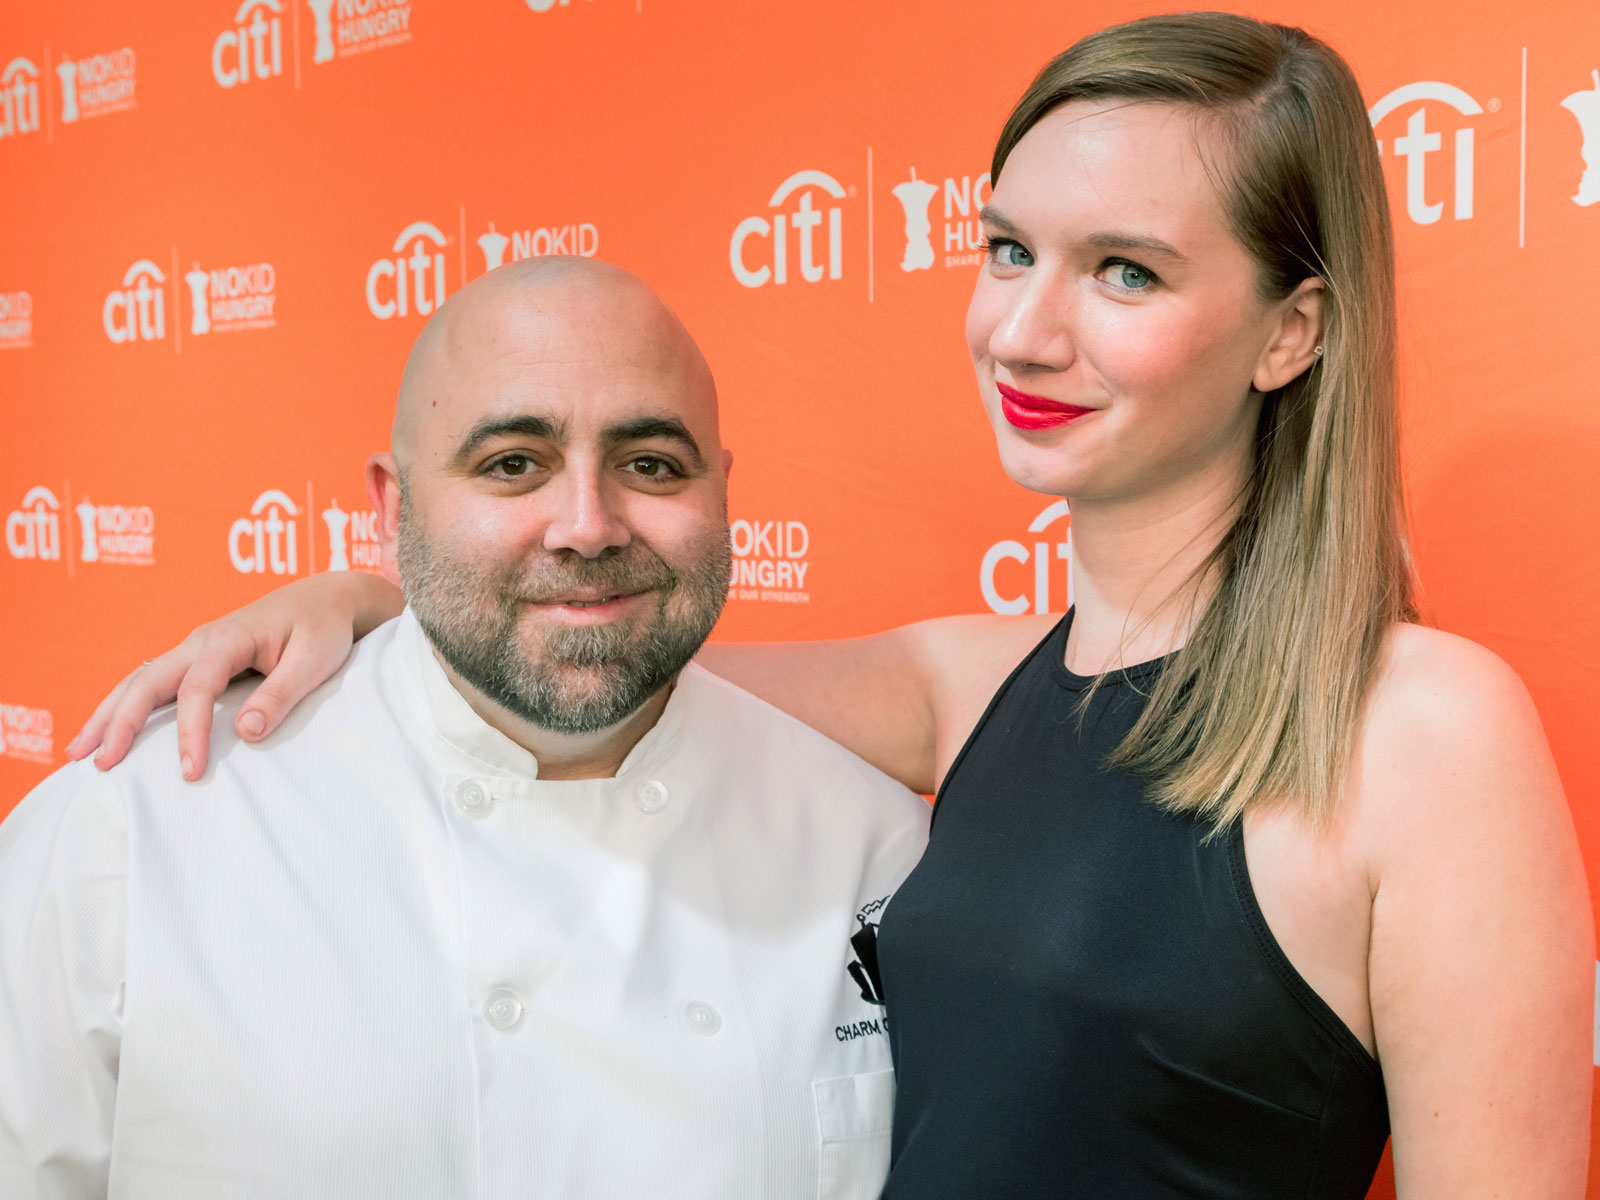 duff-goldman-engaged-FT-BLOG0418.jpg